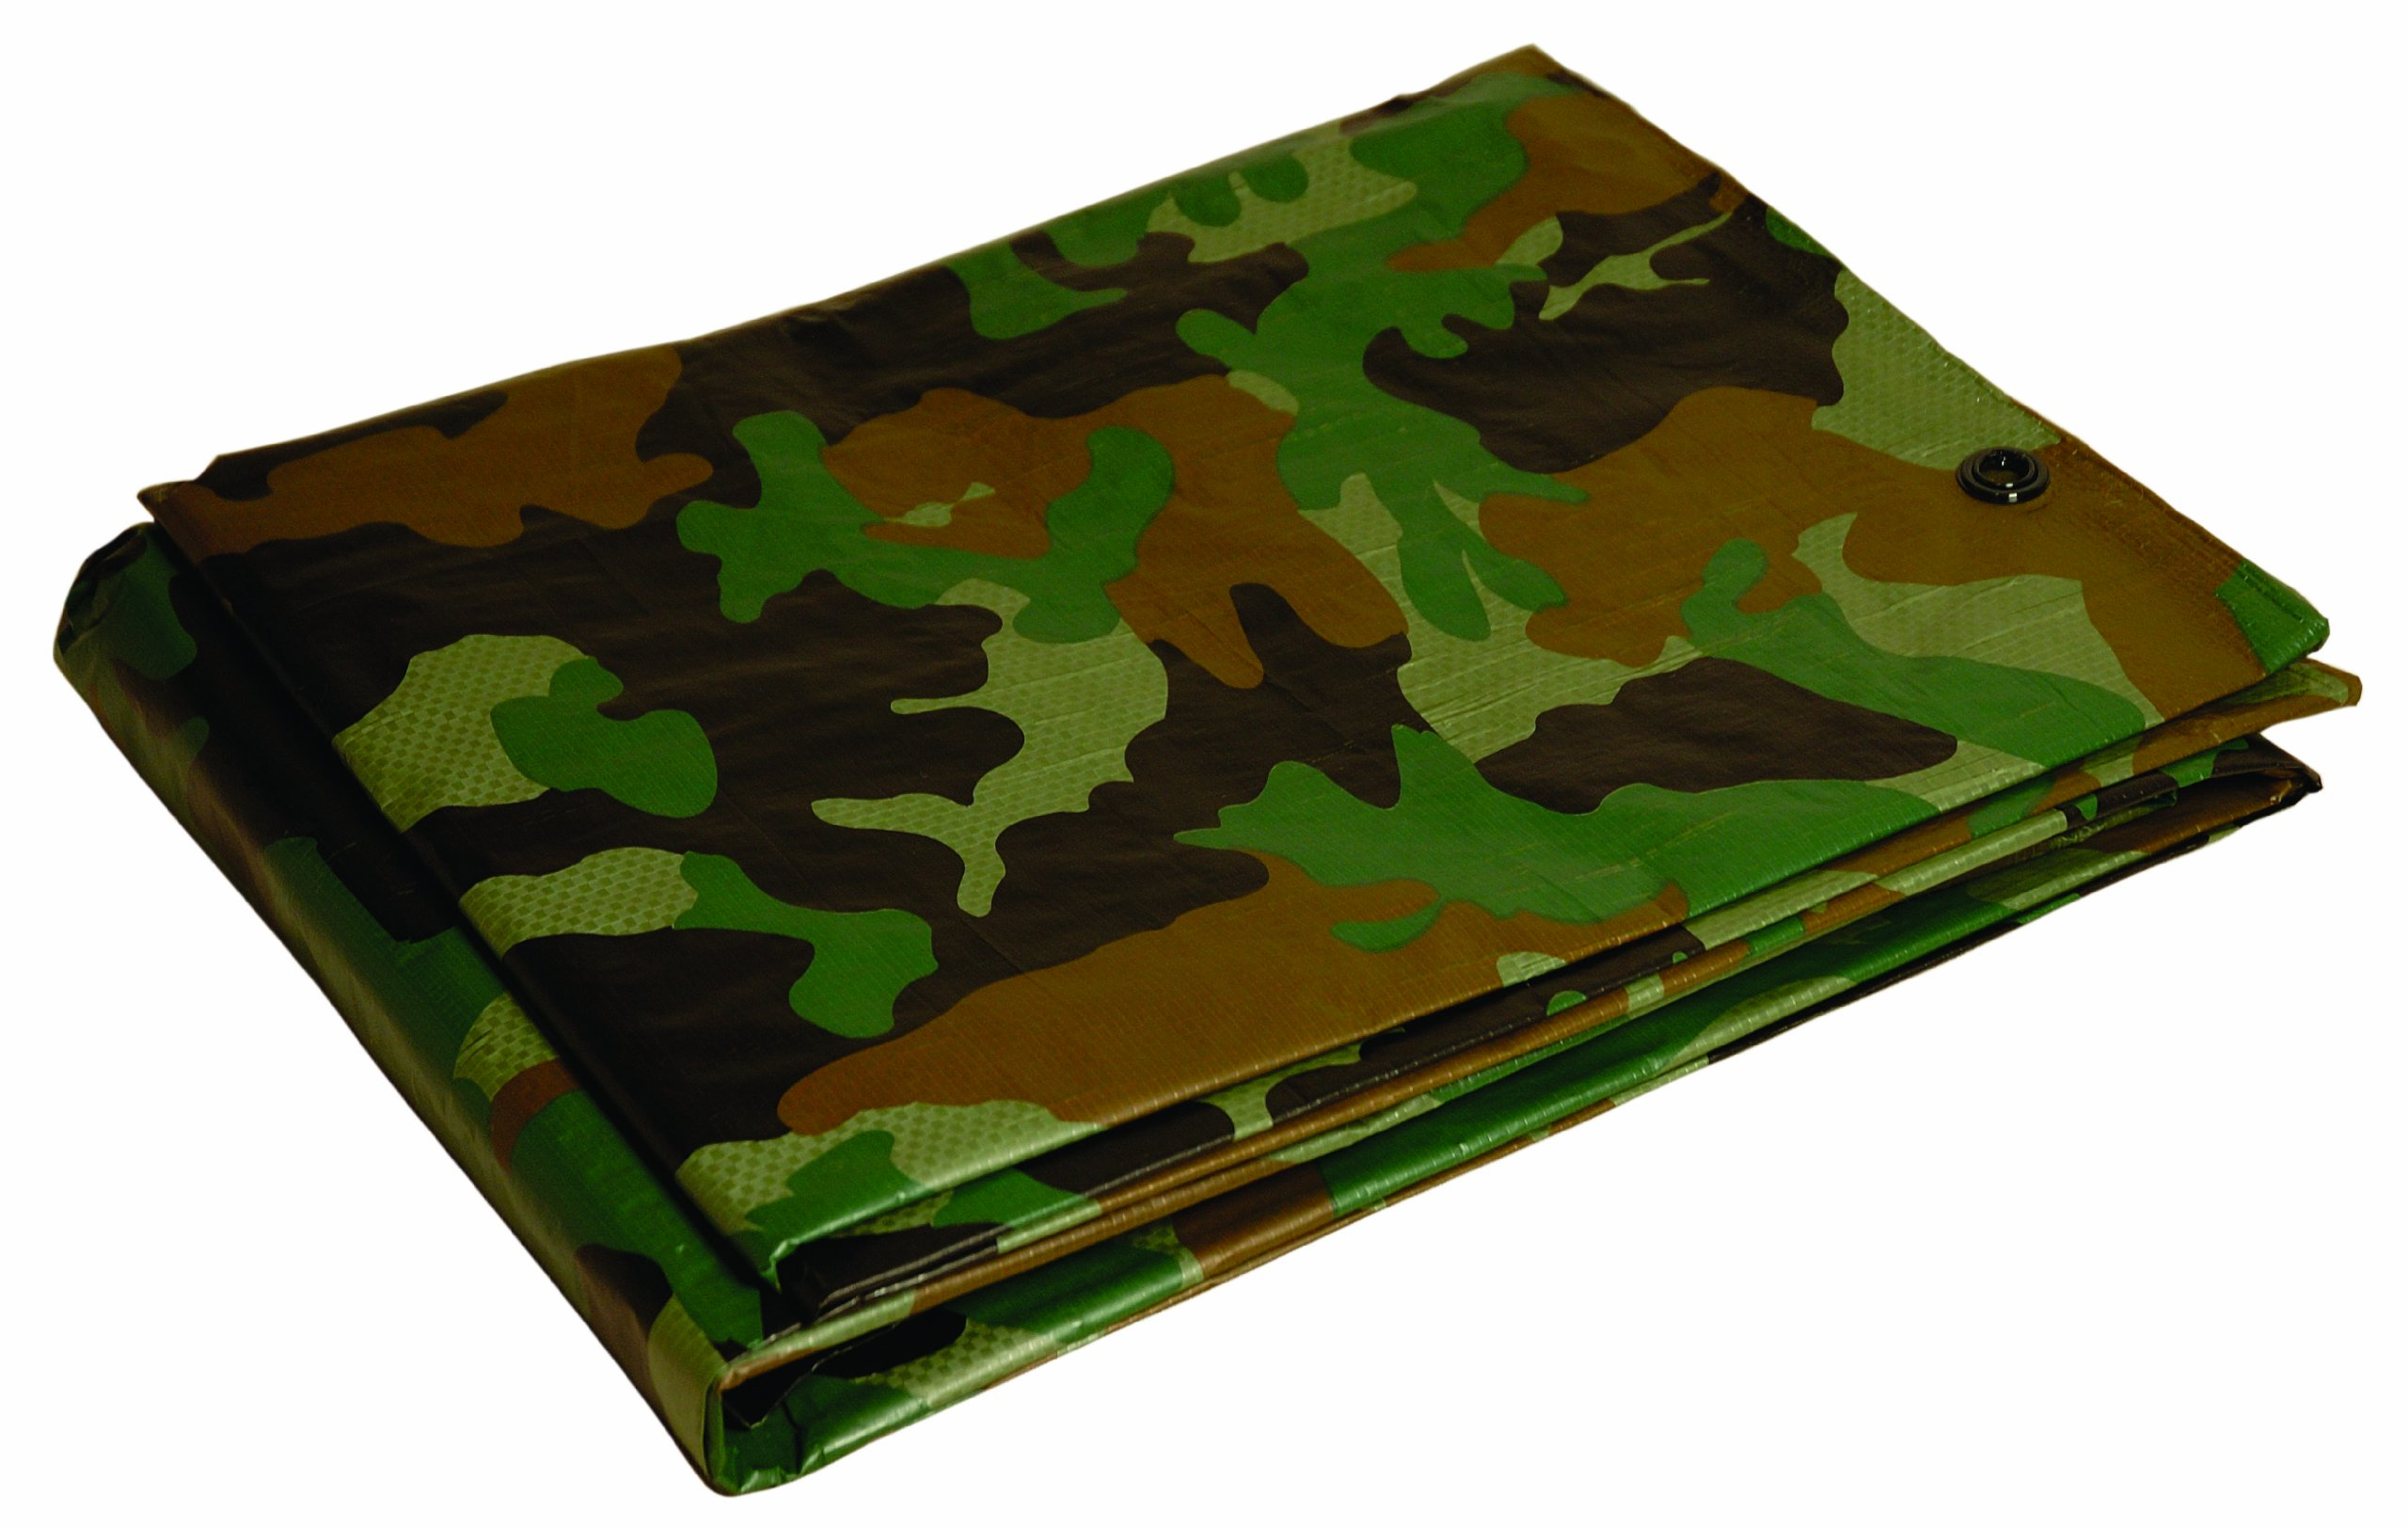 10x12 Multi-Purpose Camouflage Medium Duty DRY TOP Poly Tarp (10'x12') by DRY TOP